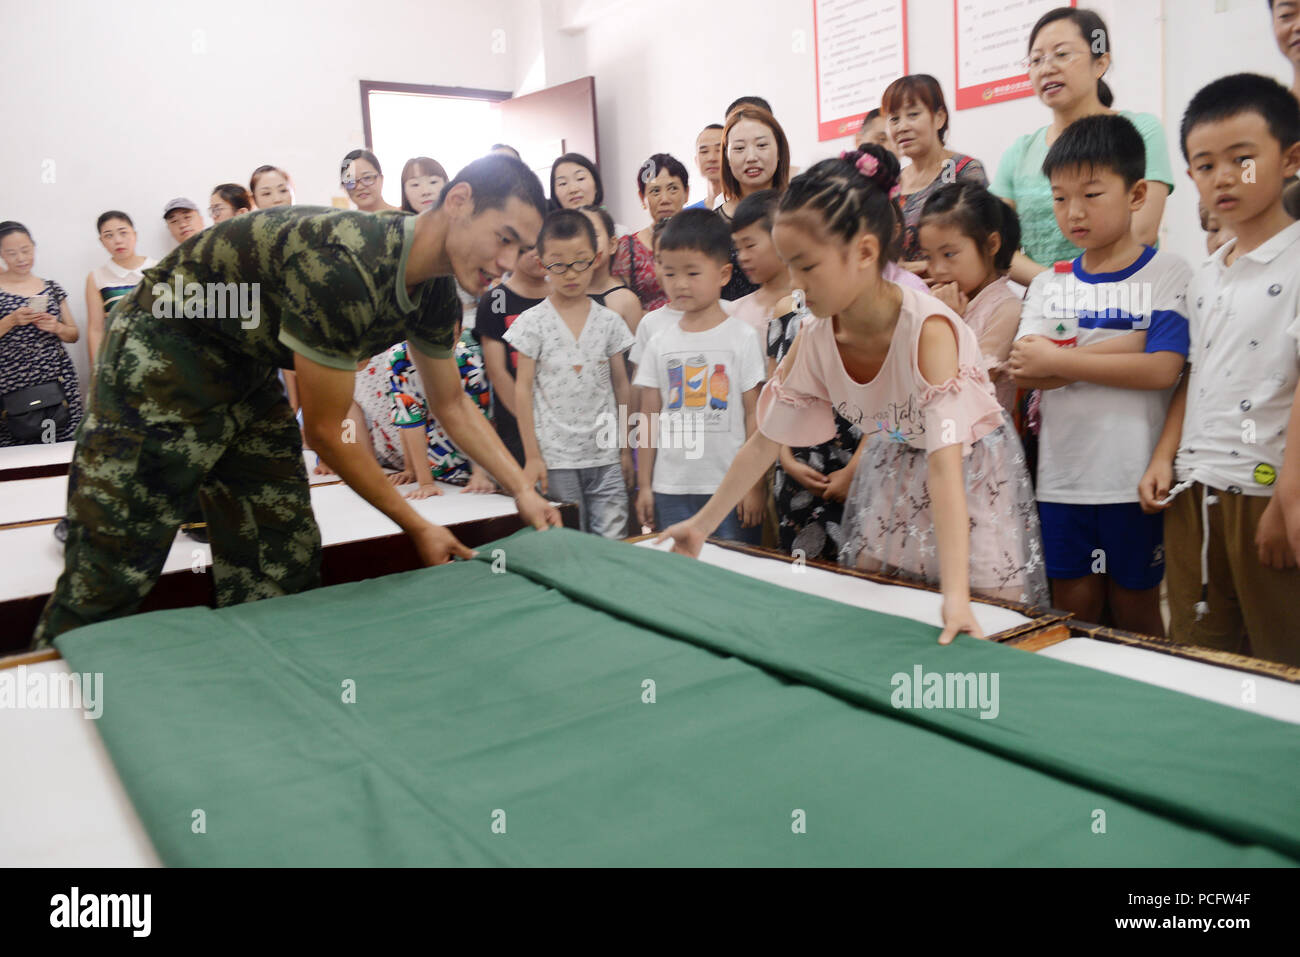 Zigui, China's Hubei Province. 2nd Aug, 2018. Pupils accompanied by their parents learn to fold up an army quilt at Zigui County Fire Squadron in Yichang City, central China's Hubei Province, Aug. 2, 2018. Children participate in various activities to enrich their summer vacation. Credit: Wang Huifu/Xinhua/Alamy Live News - Stock Image